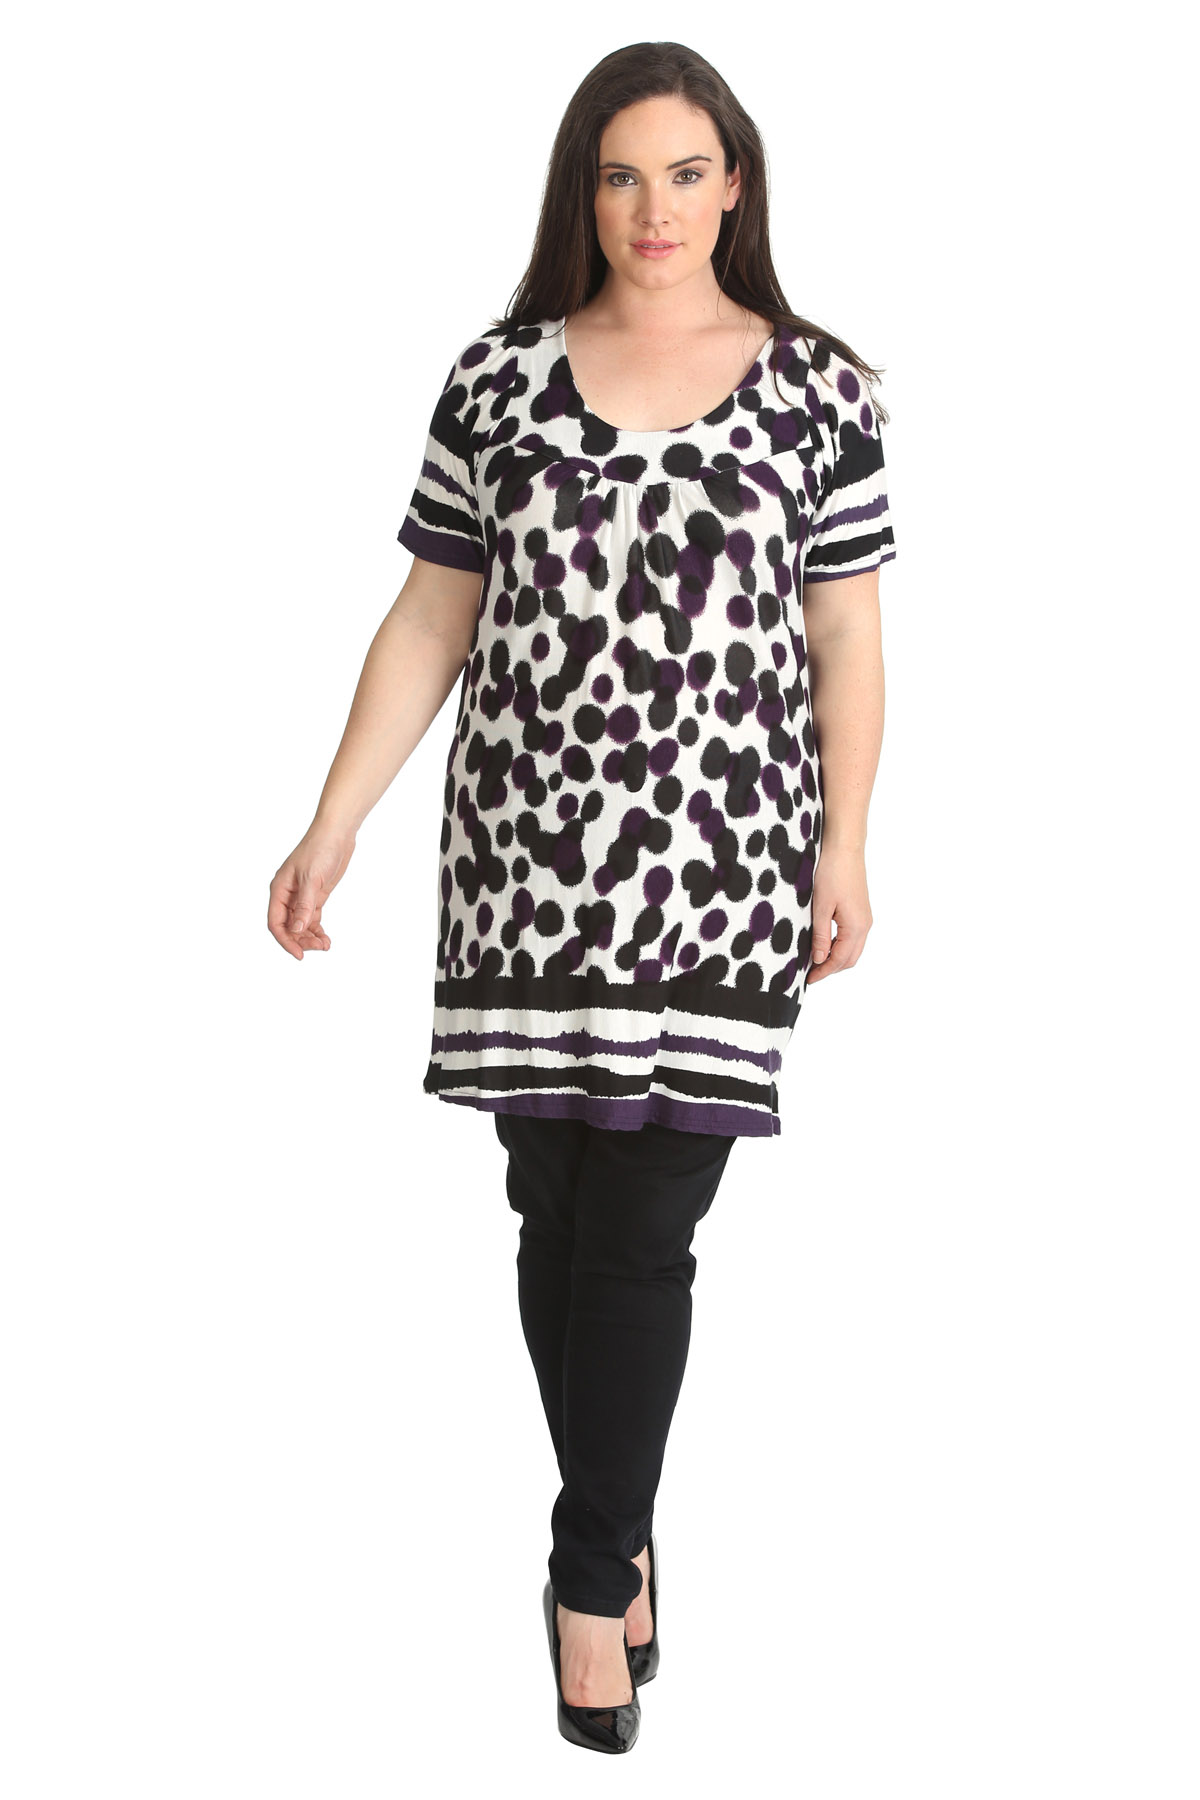 New Womens Plus Size Top Ladies Floral Print Tunic Stretch Smock Top Nouvelle